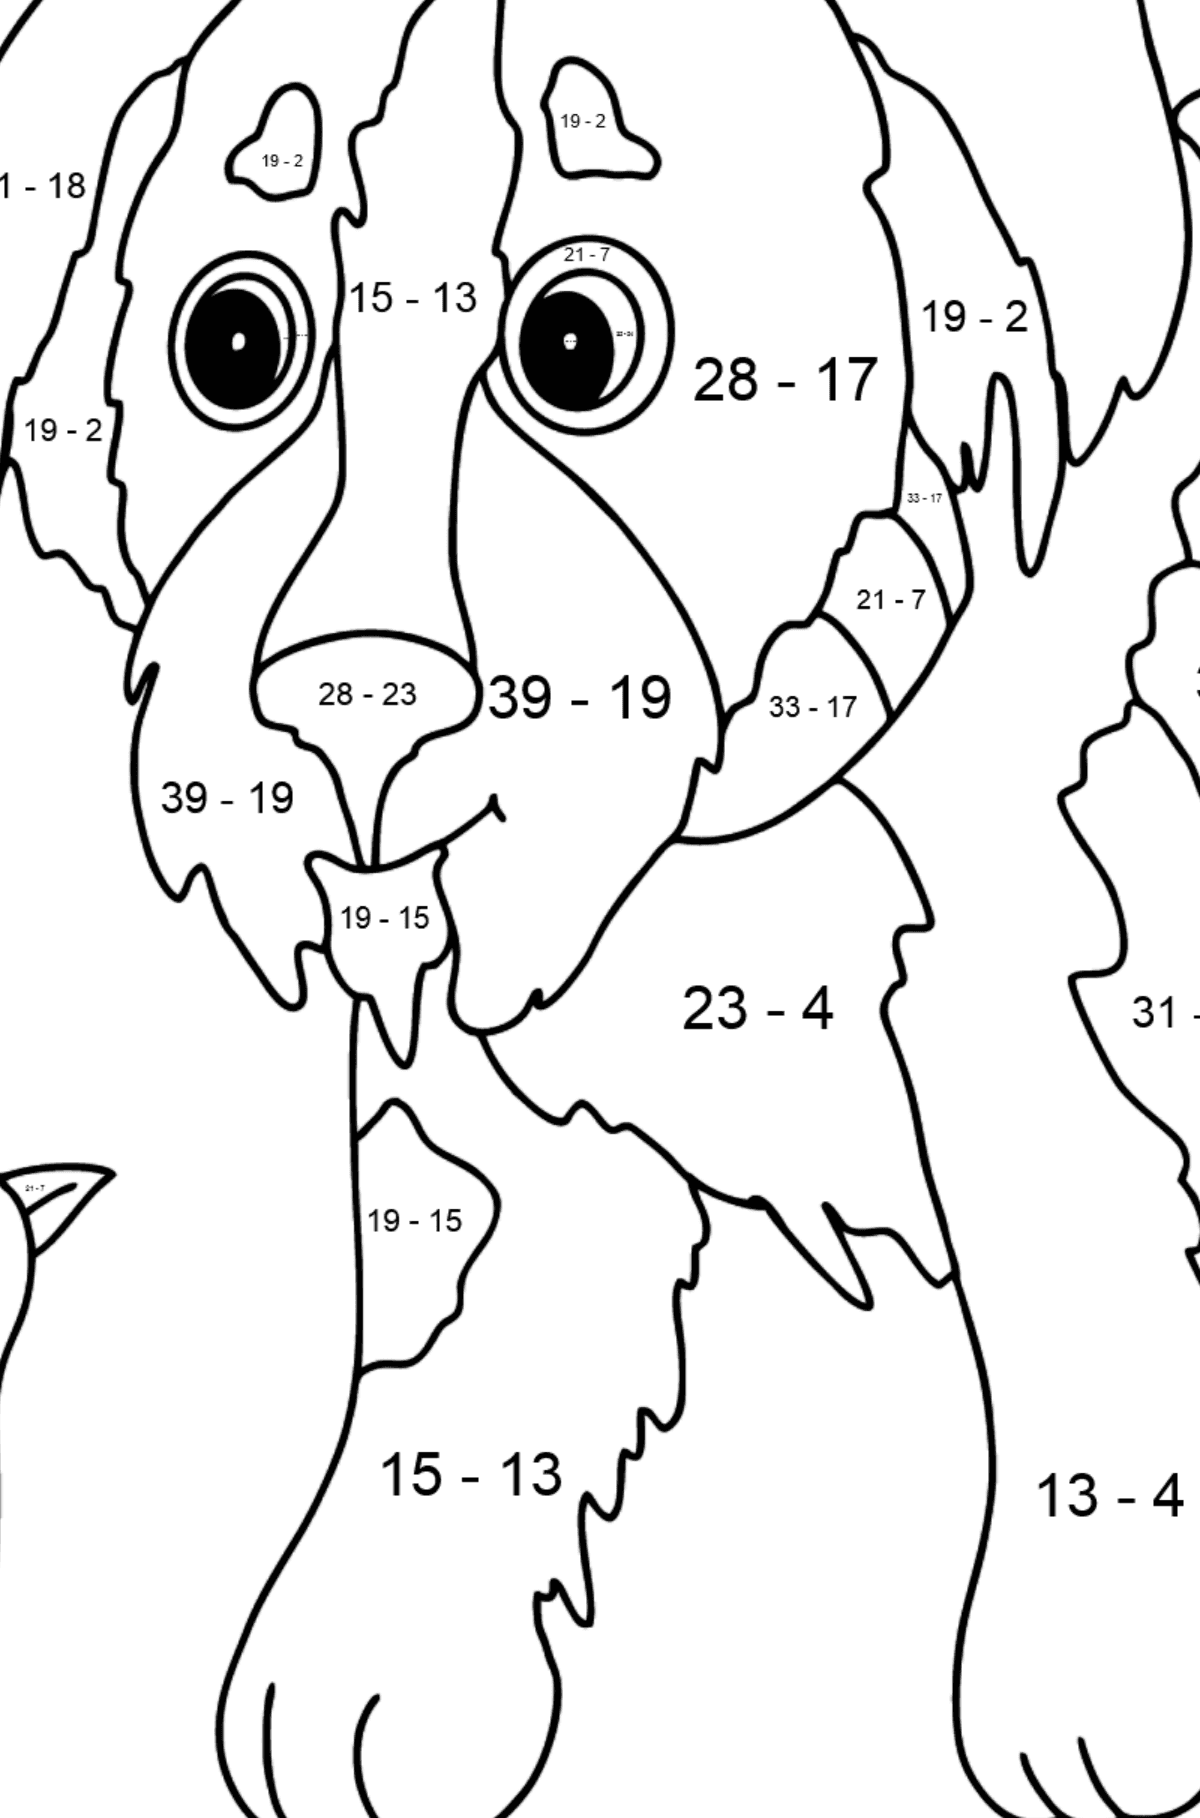 Coloring Page - A Dog is Playing with a Bird - Math Coloring - Subtraction for Kids